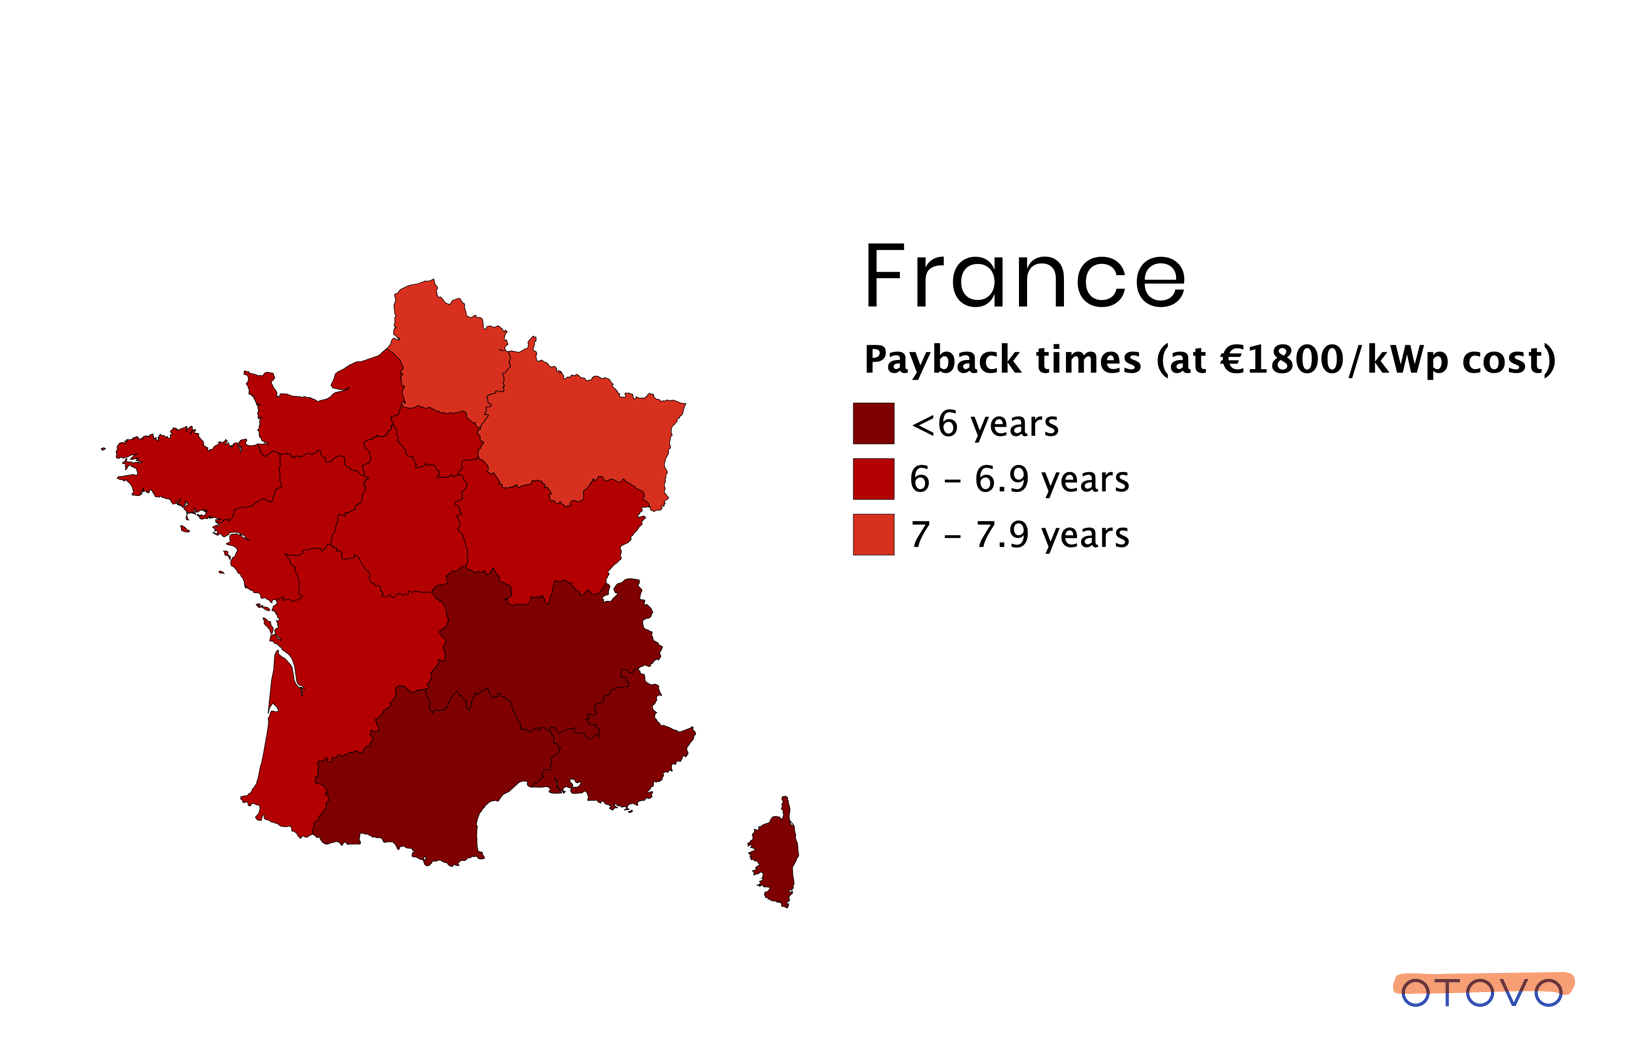 France has traditionally had low energy prices, thanks to nuclear power.